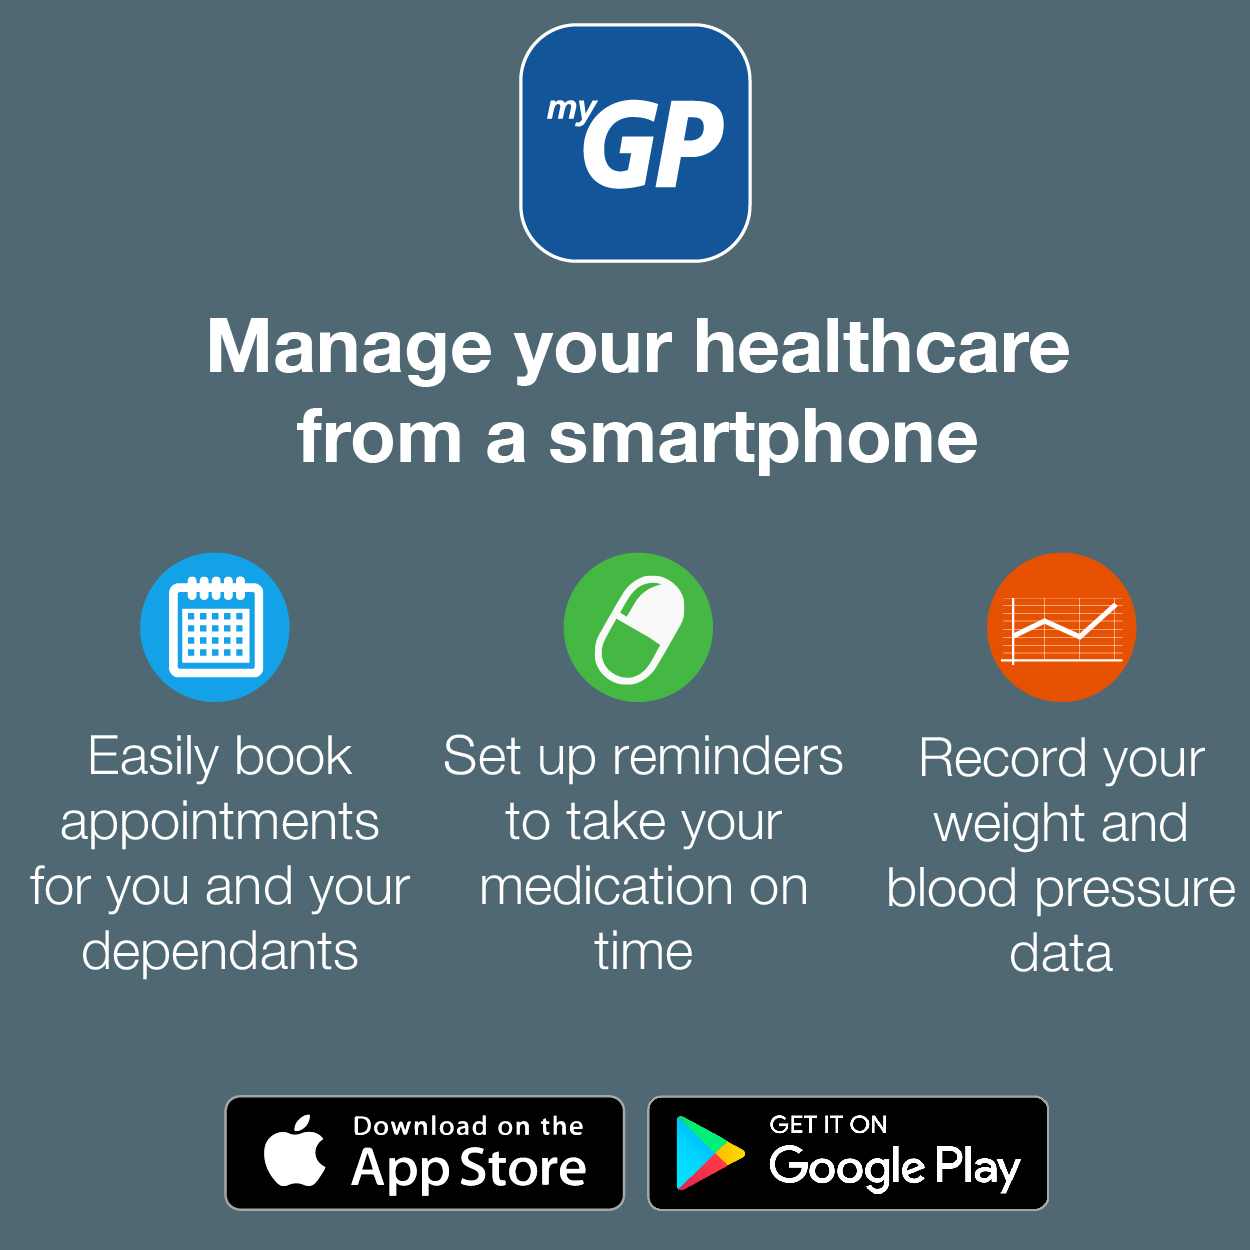 manage your healthcare from a smartphone